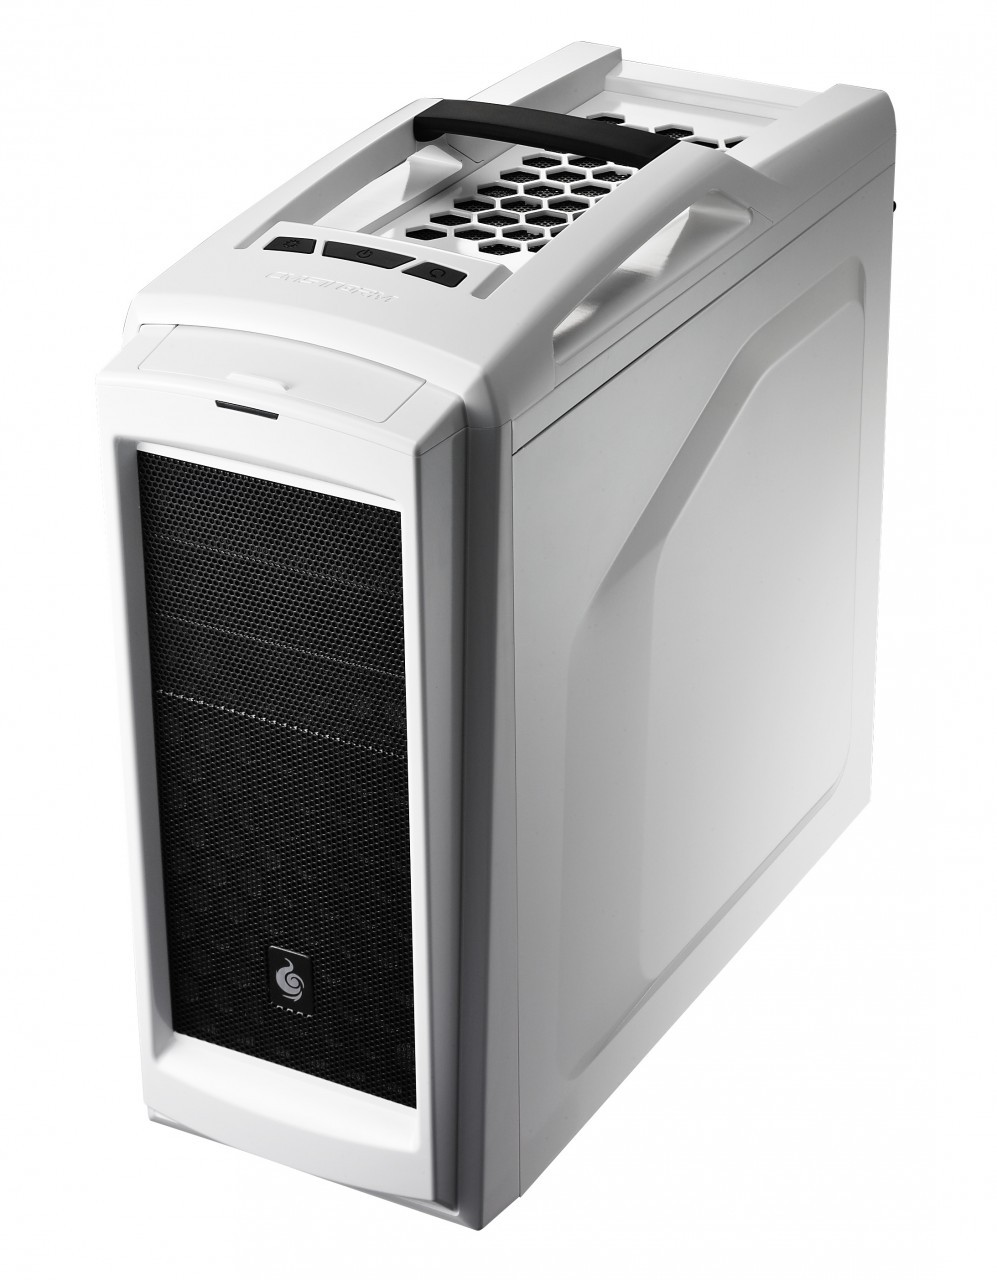 Cooler Master CM Storm Scout 2 Advanced - obudowa midi tower ATX dla graczy